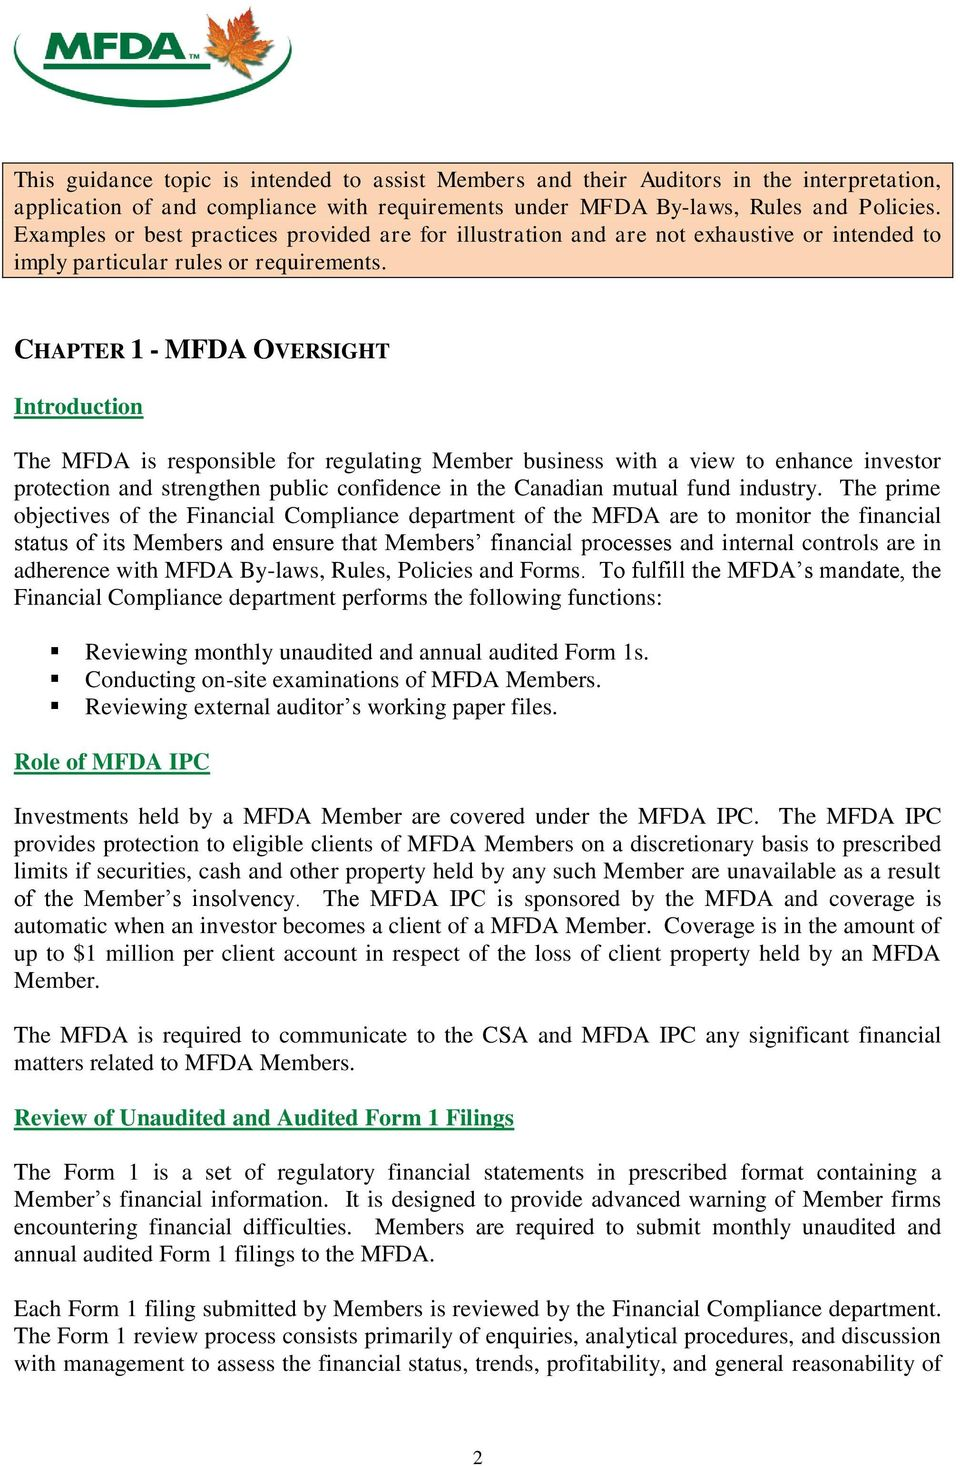 CHAPTER 1 - MFDA OVERSIGHT Introduction The MFDA is responsible for regulating Member business with a view to enhance investor protection and strengthen public confidence in the Canadian mutual fund